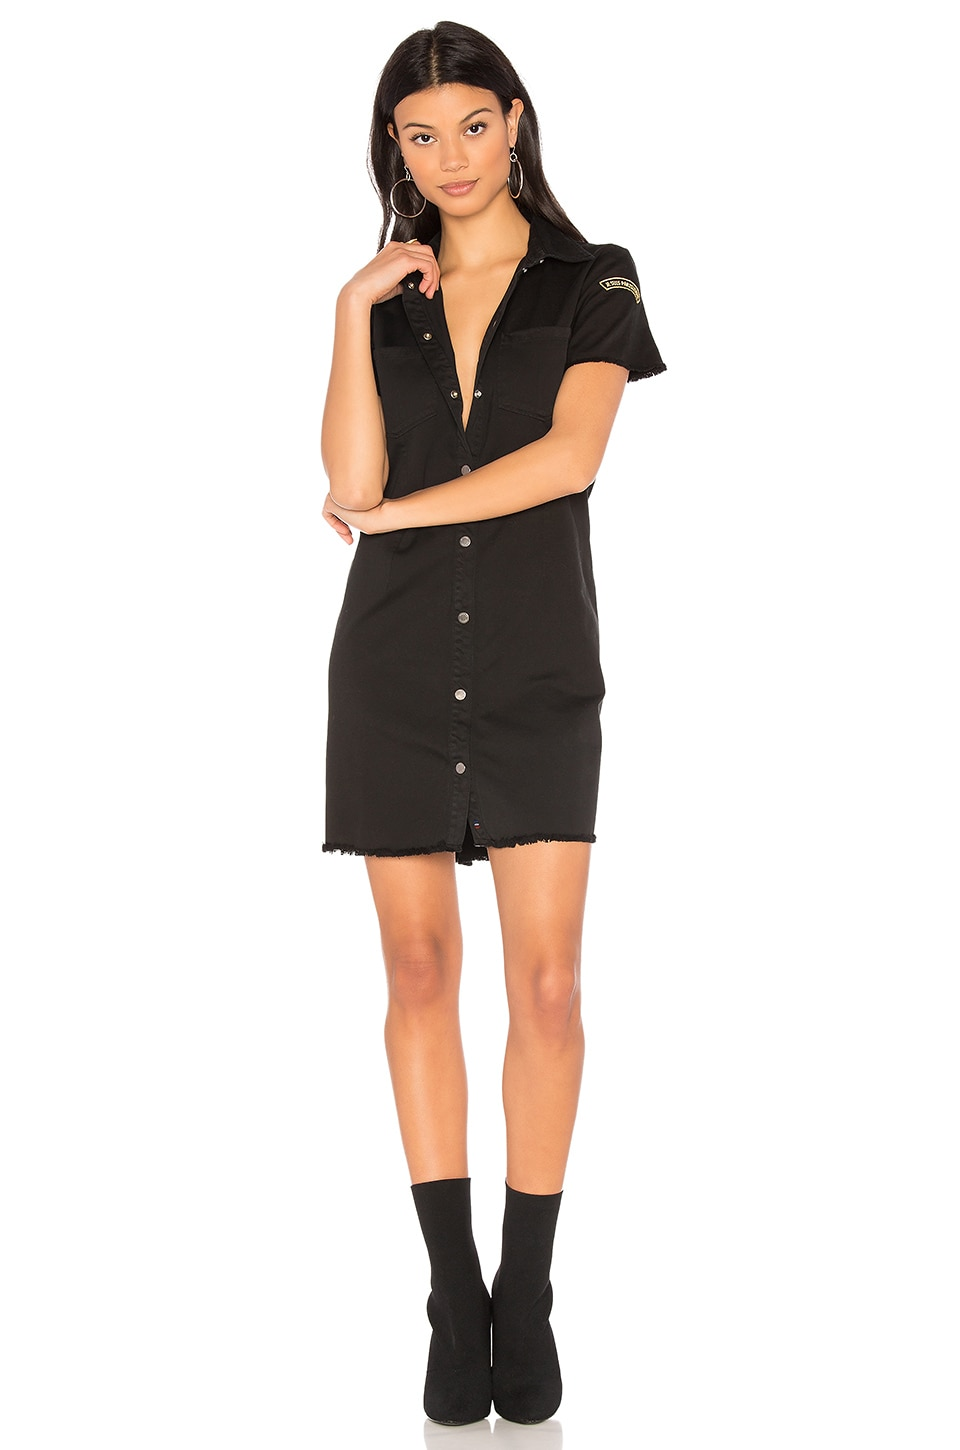 Etienne Marcel Denim Button Up Dress in Black